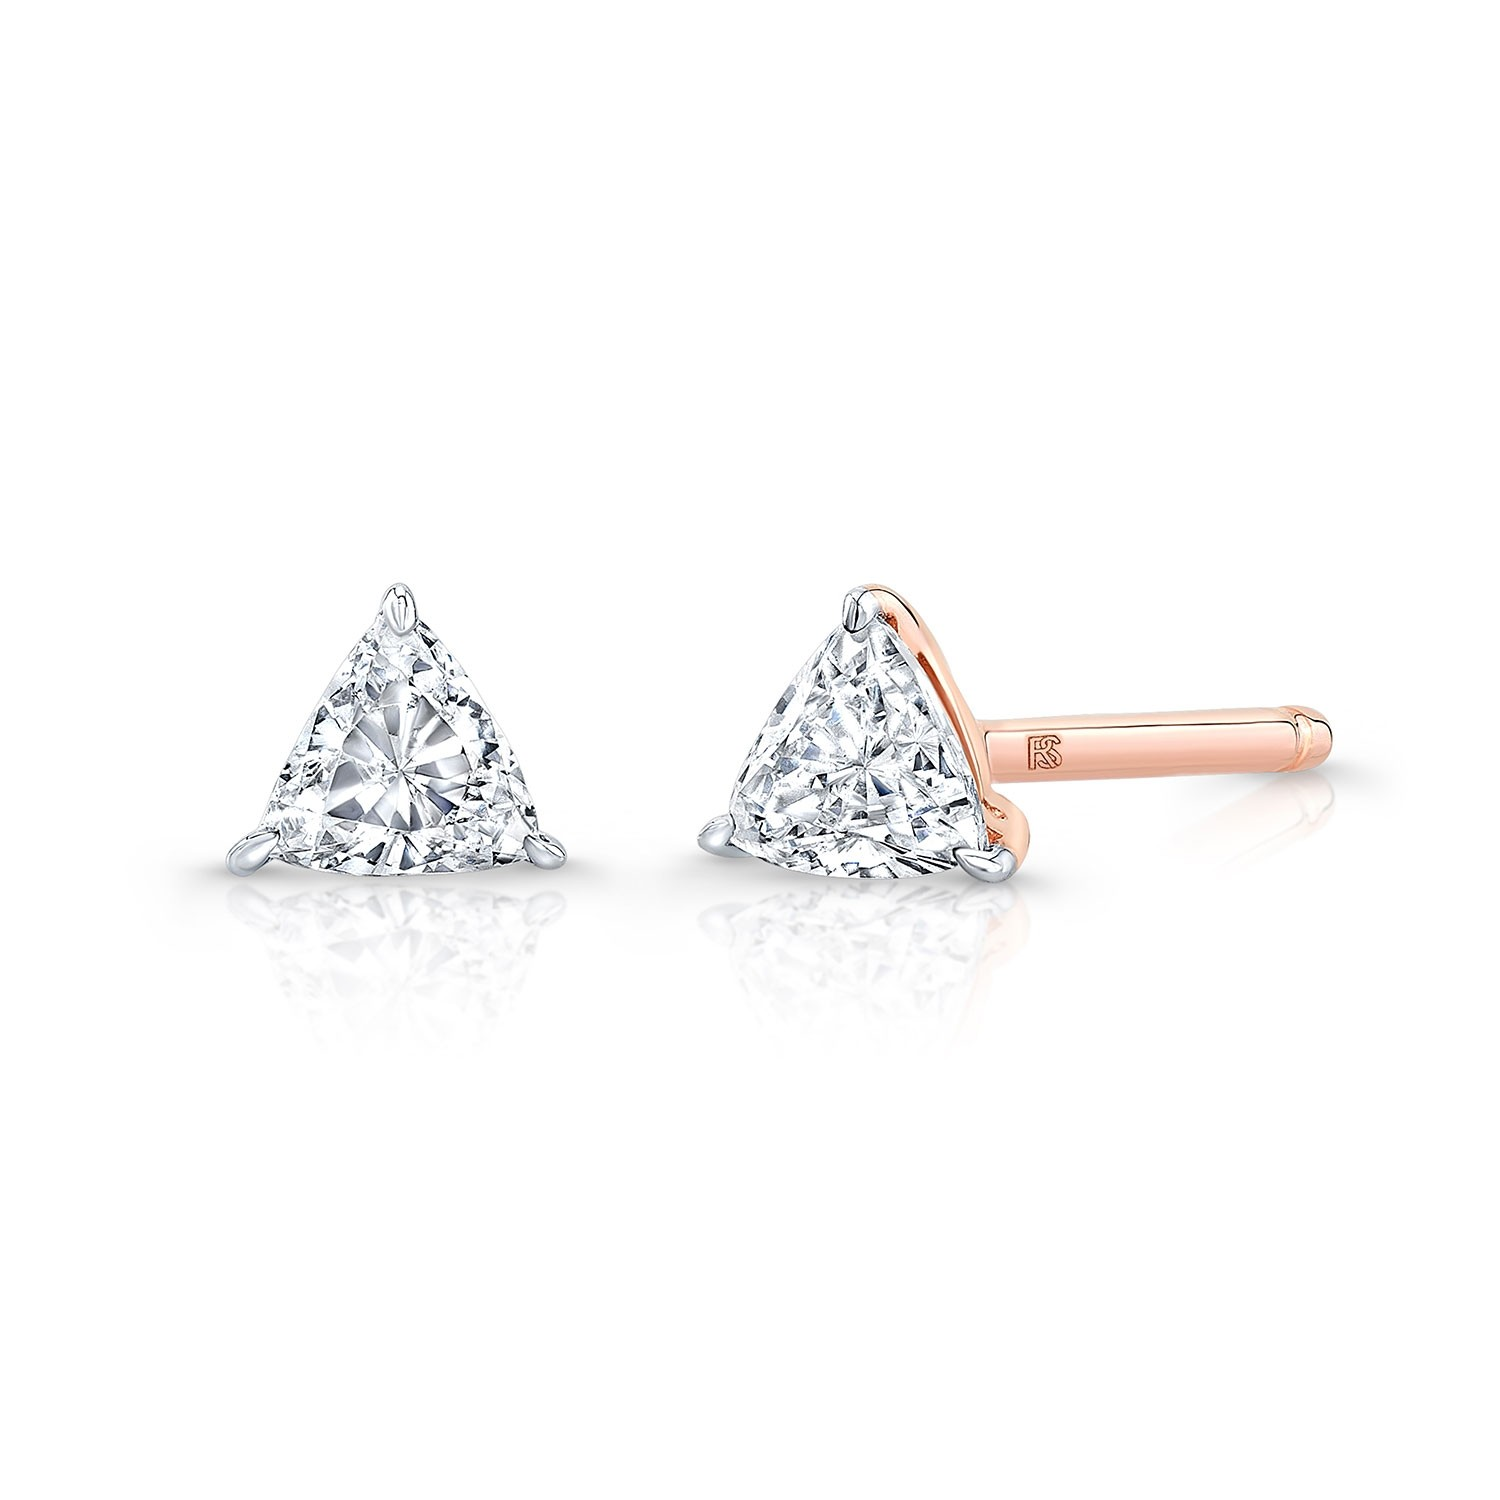 14k Rose Gold Floating Trillion Cut Diamond Stud